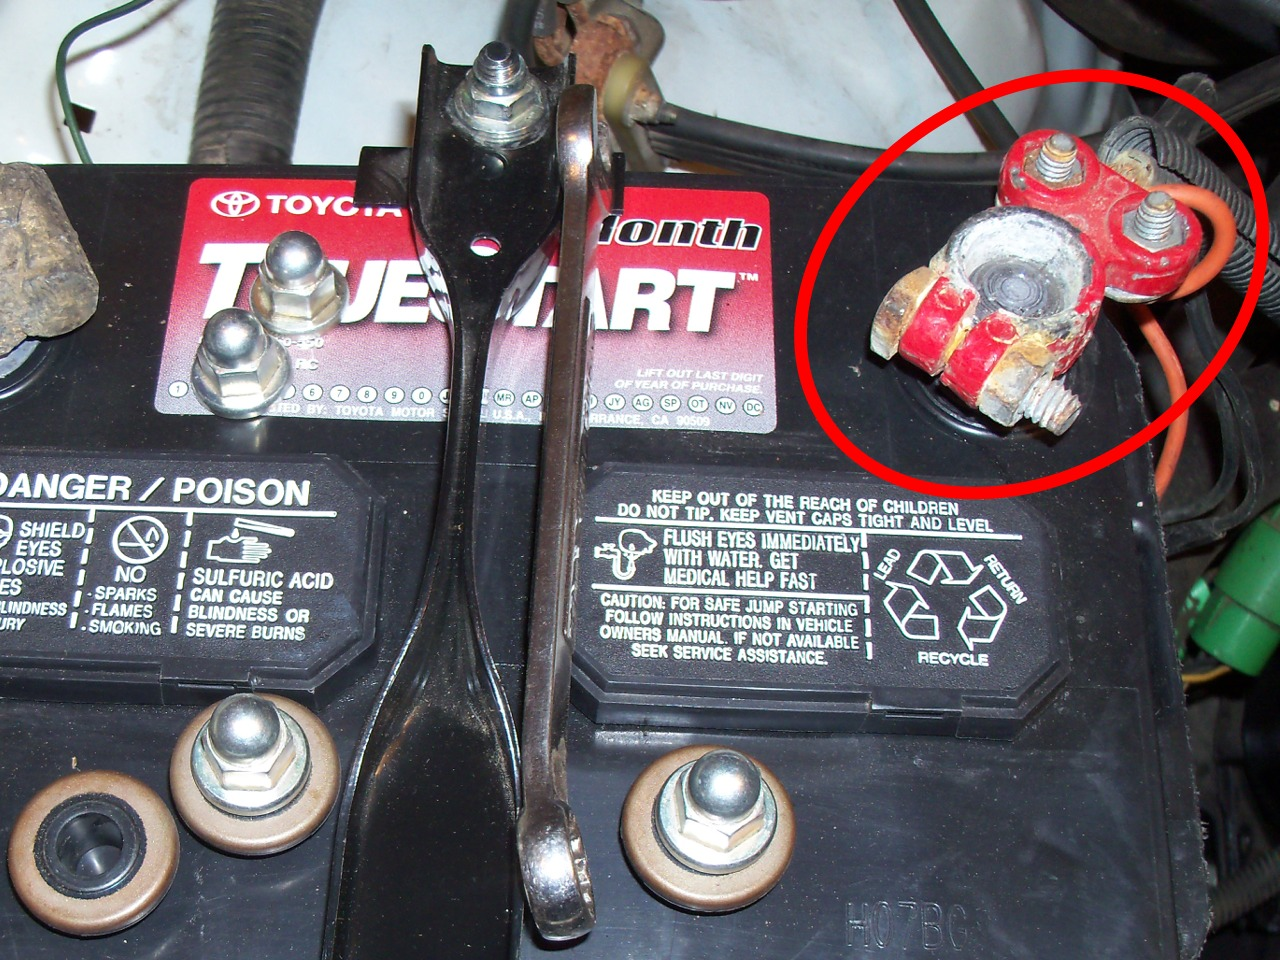 Raretoyota Trucks 2011 April Wiring Harness For Old The Terminal Was Clamped Onto Wires So Original Connectors Had Been Cut Off There No Good Way To Attach Fusible